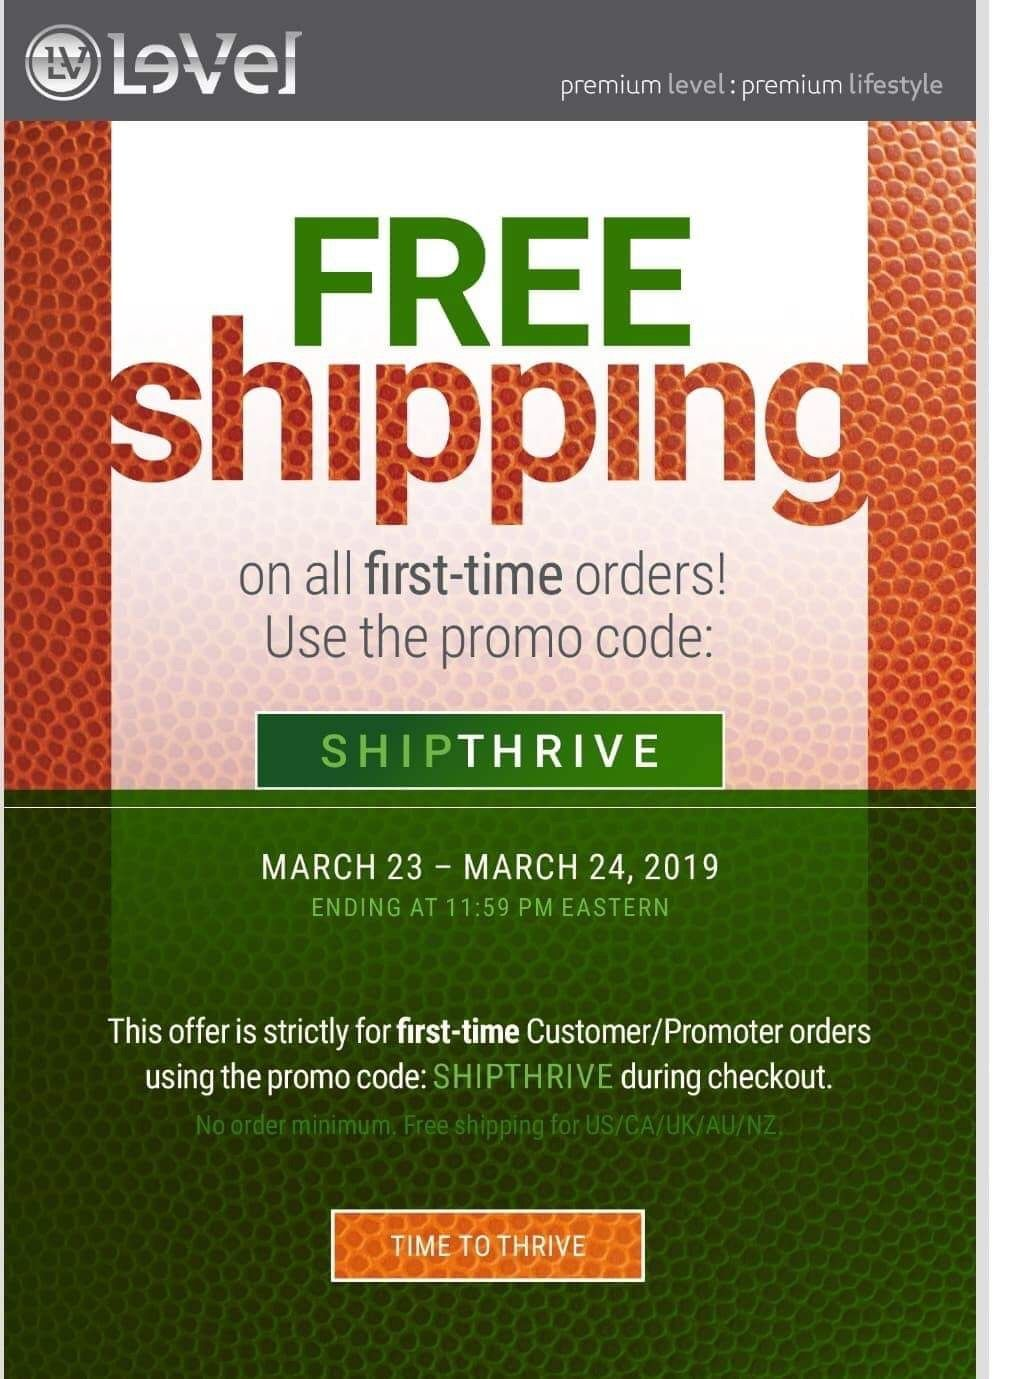 WooHoo!!! 1st time customers get FREE SHIPPING with the promo code